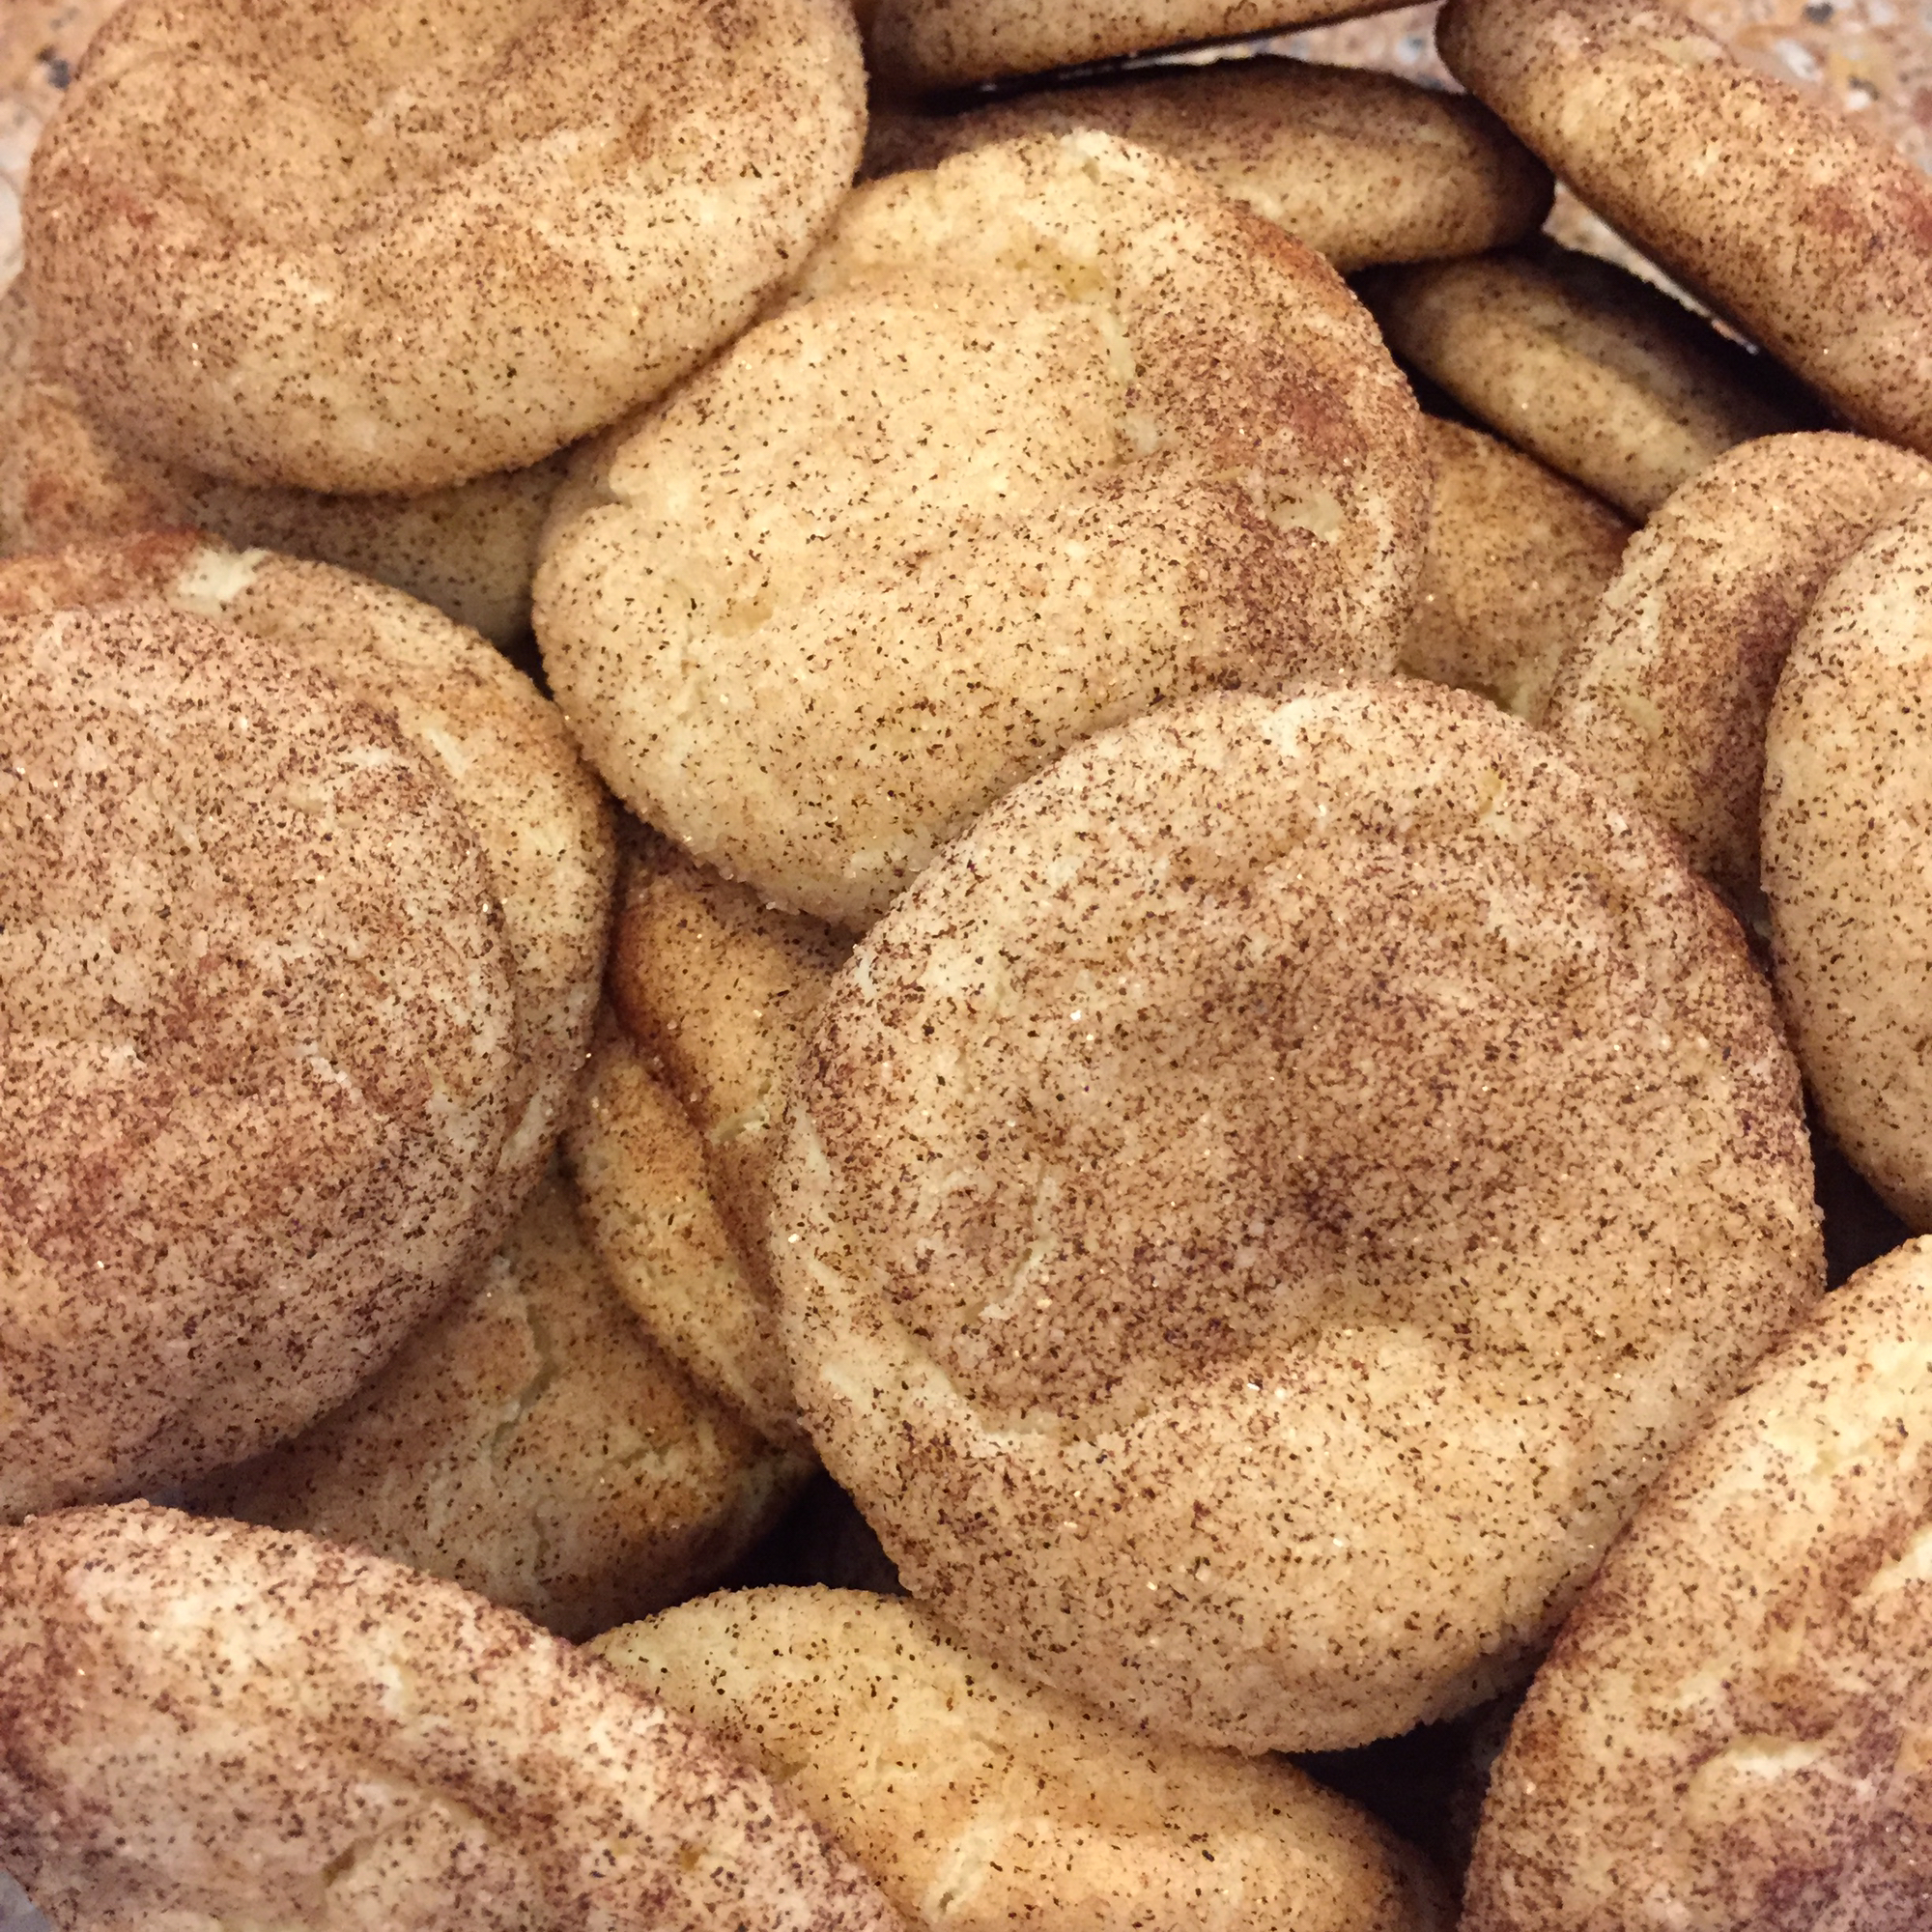 Several of Mrs. Sigg's Snickerdoodles